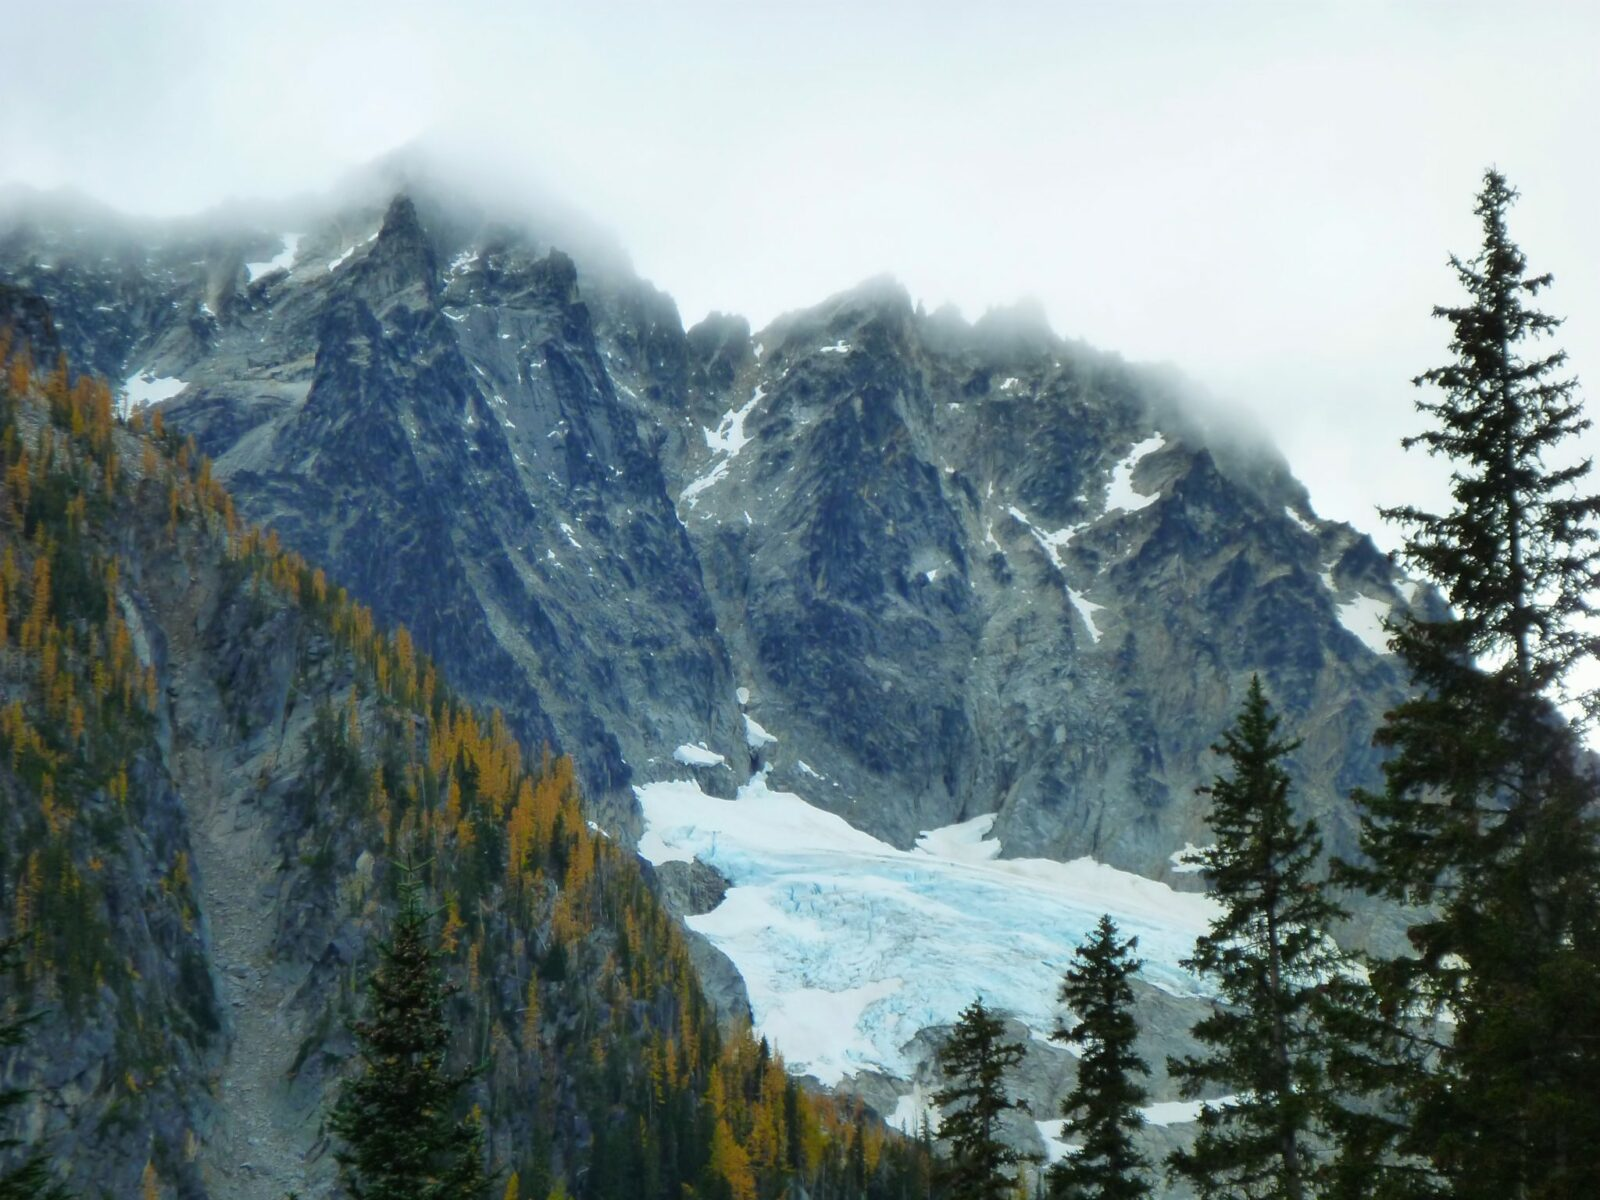 A glacier clings to the side of a high mountain whose top is lost in the clouds. In the foreground are golden larches and evergreen trees.